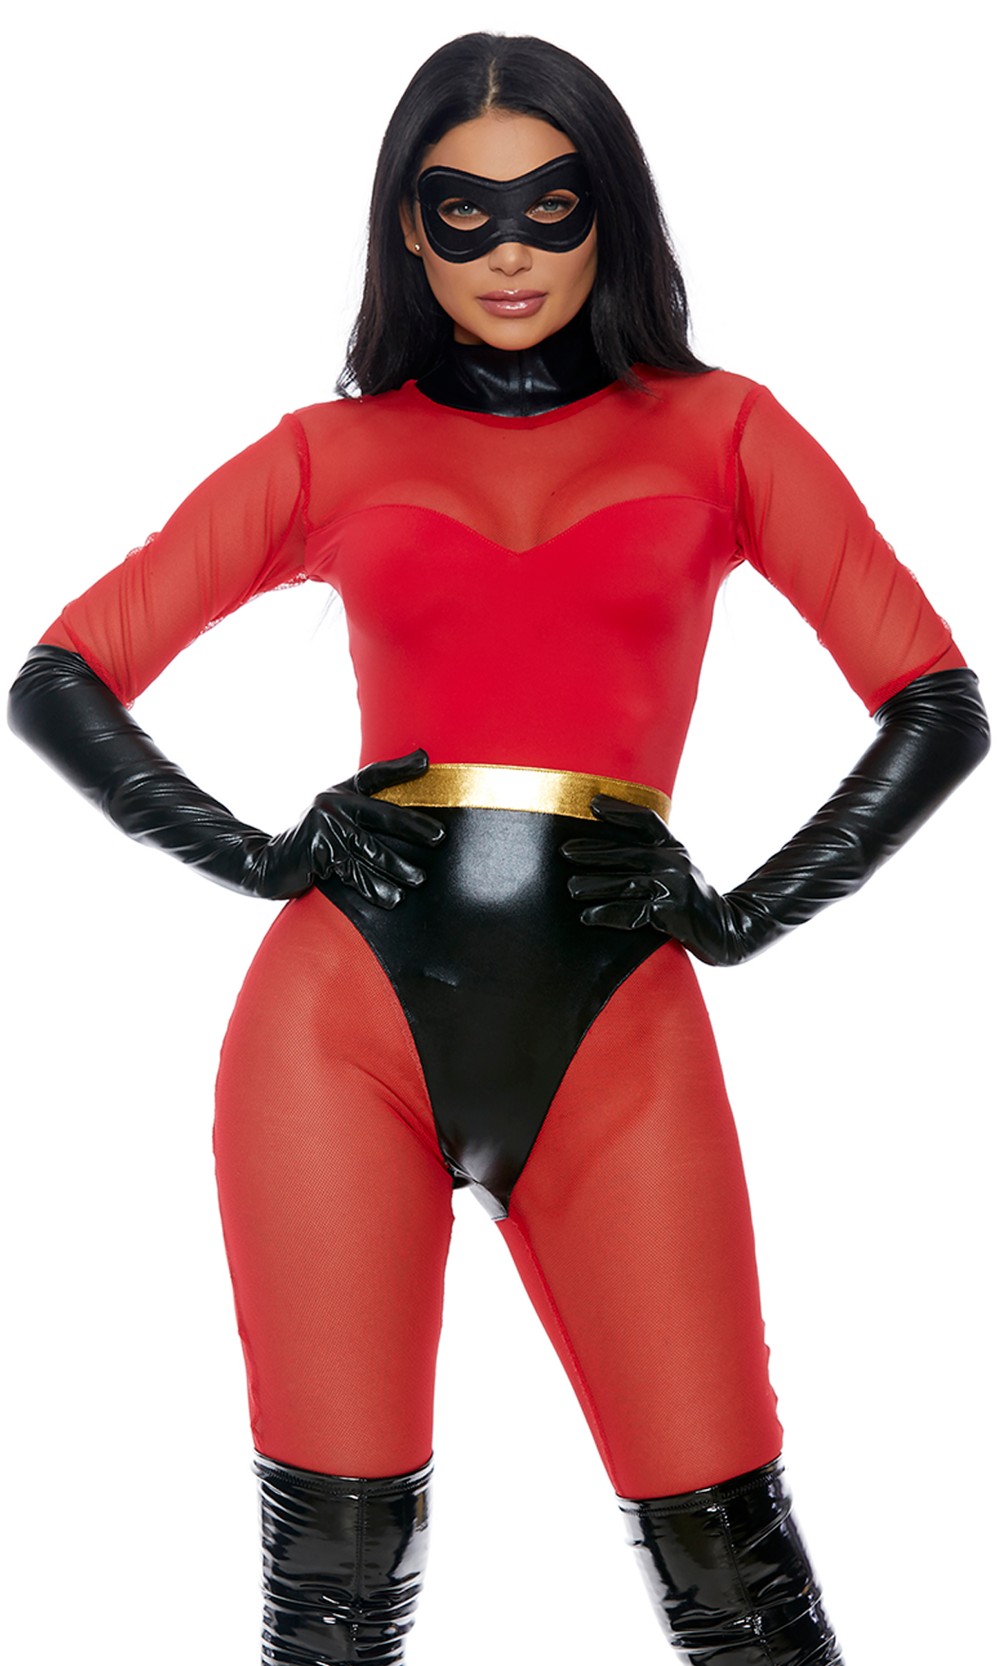 Super Suit Incredibles Superhero Adult Womens Halloween